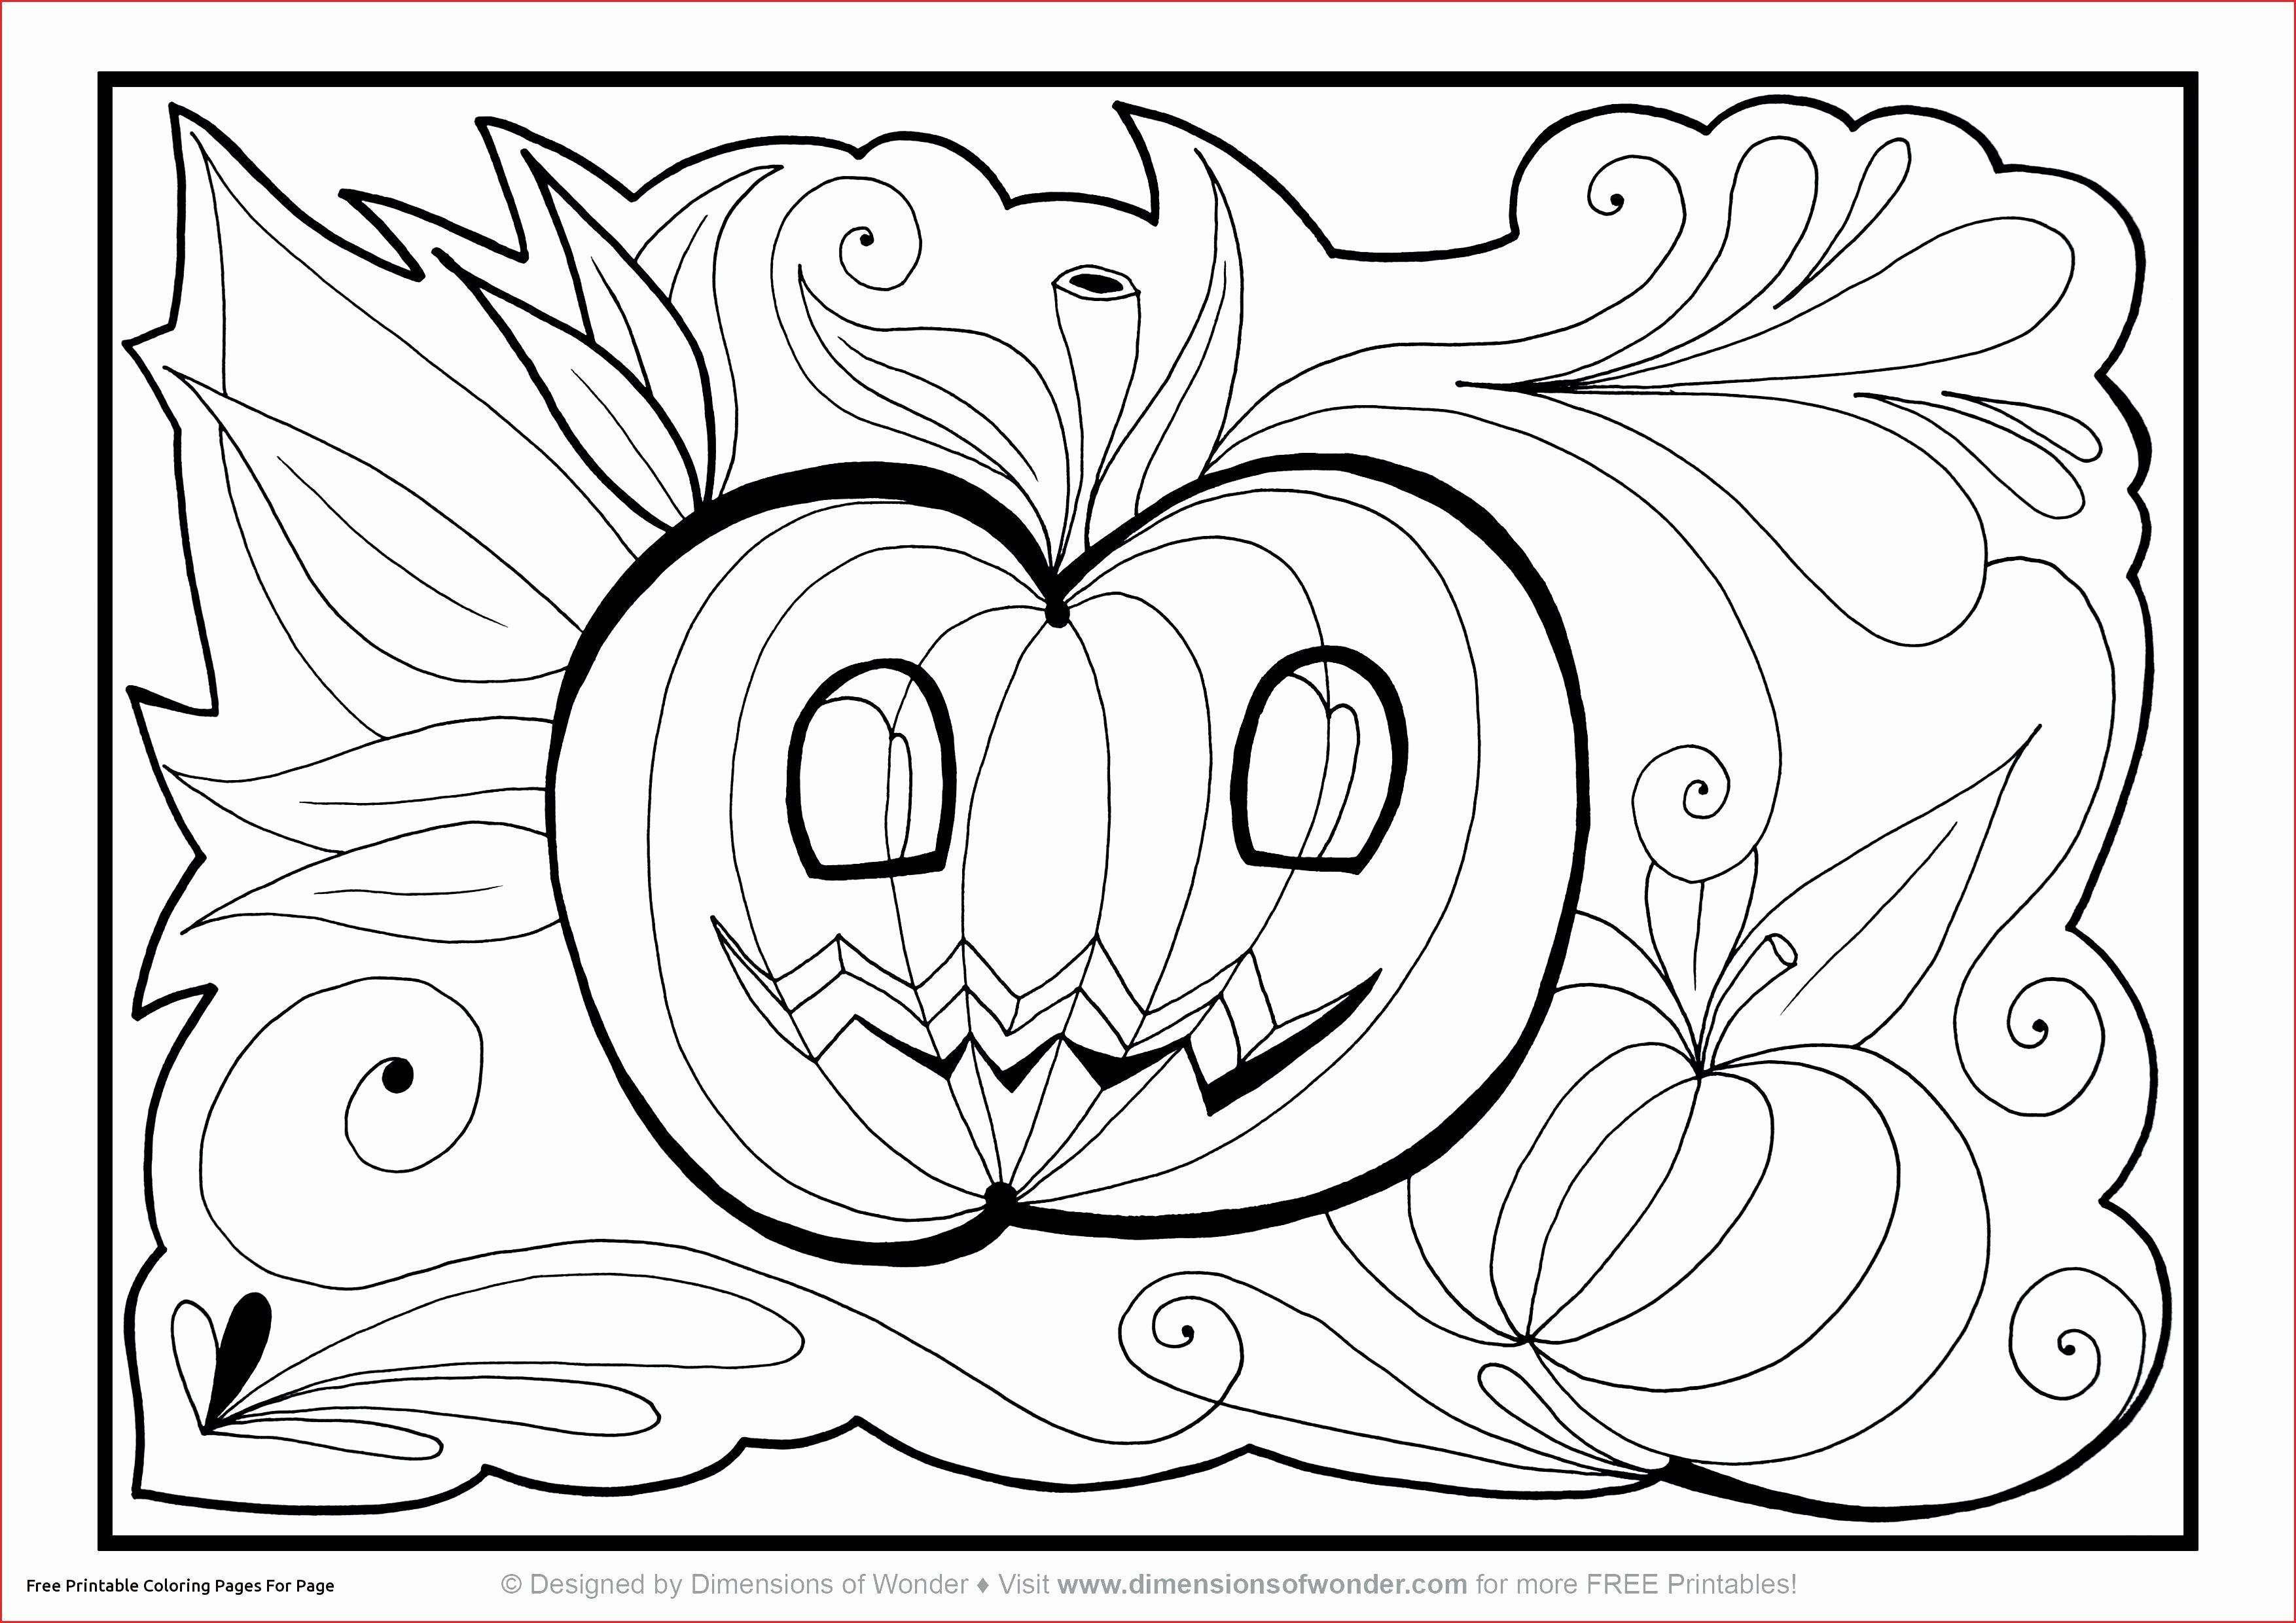 Coloring For Tree Best Of Coloring Pages For Older Kids Color Pages For Adults Mardi Gras Template Art [ 2480 x 3508 Pixel ]